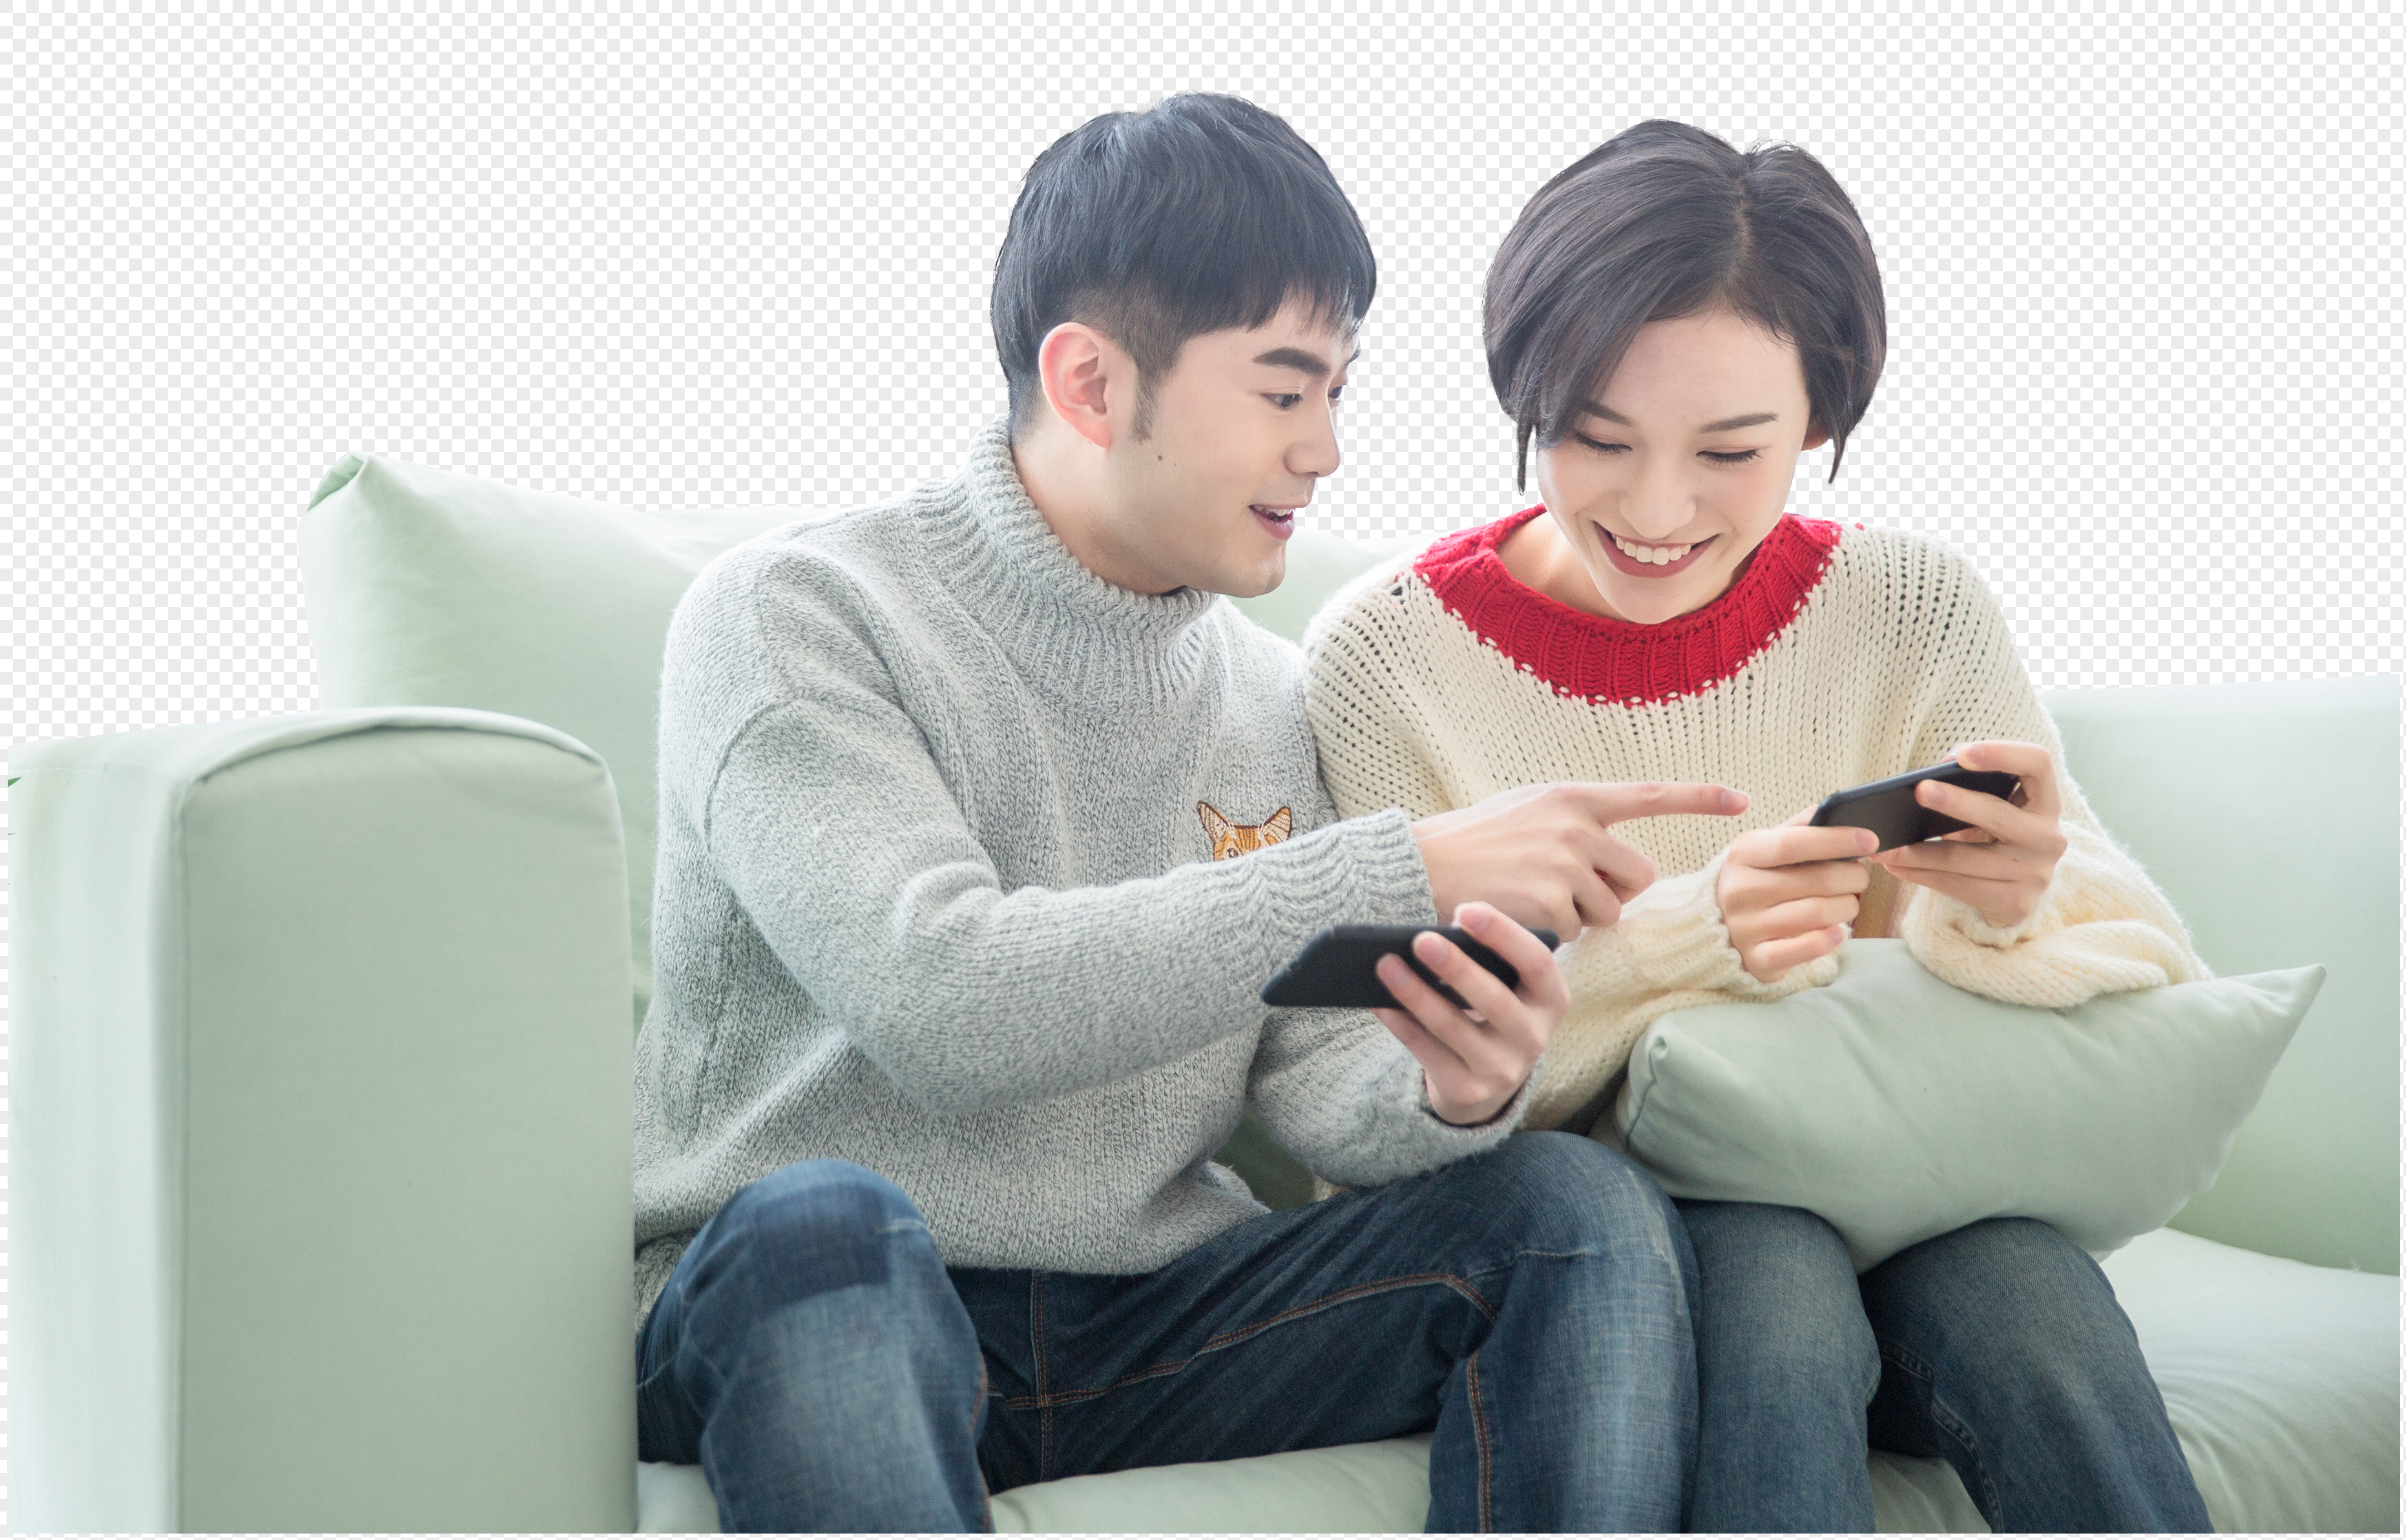 5. 99inch china mobile download games for mobile techno phone.